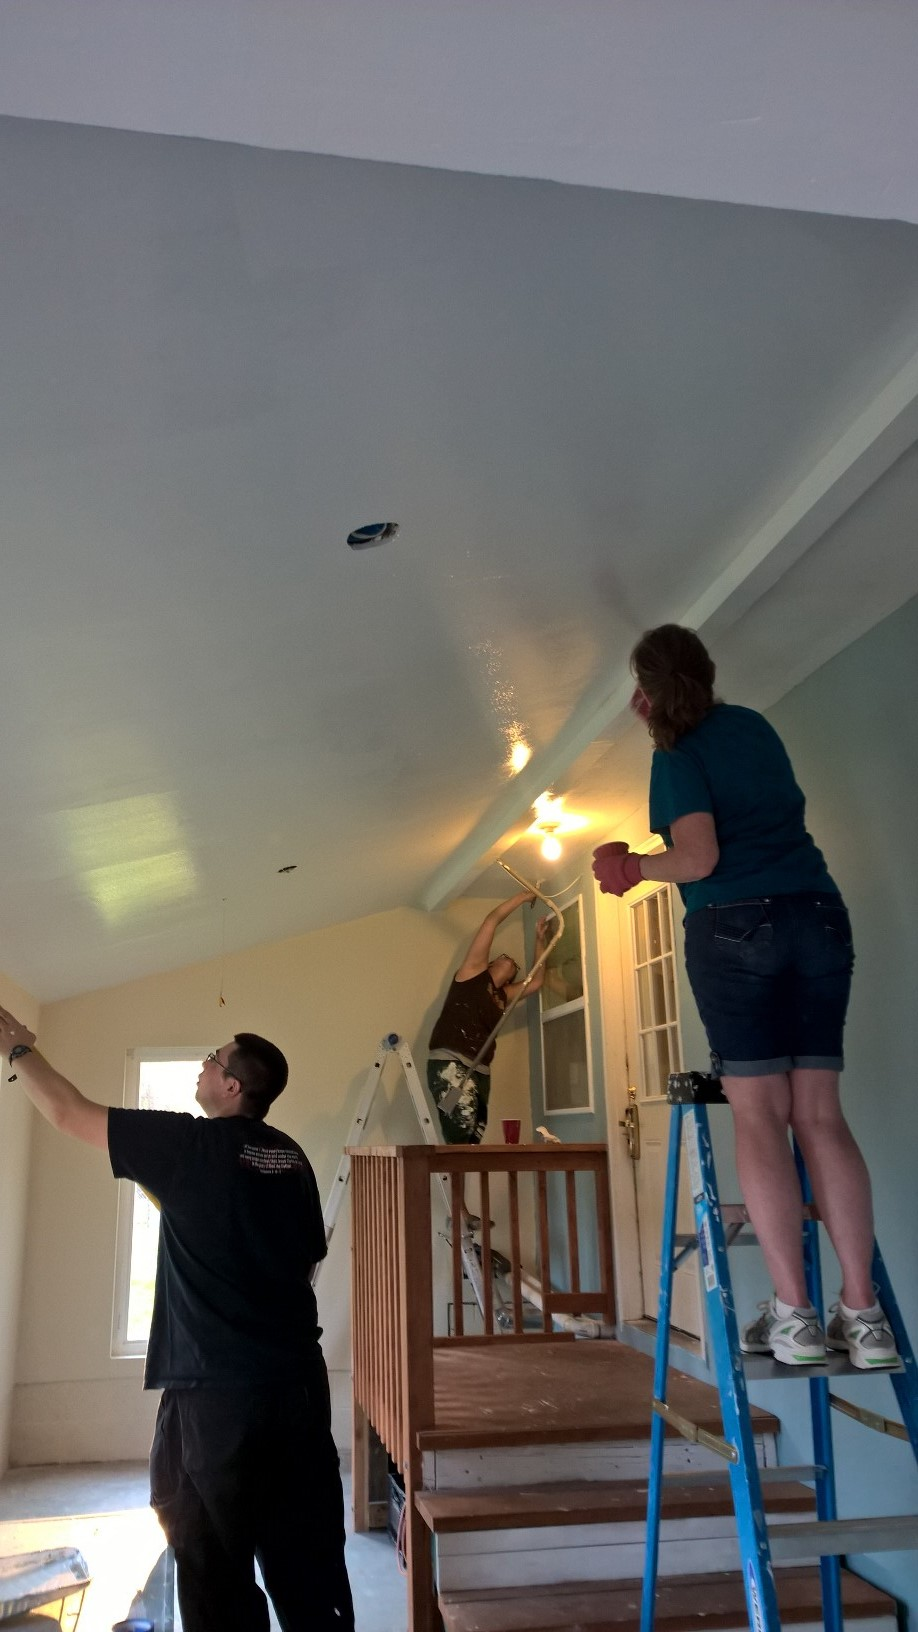 Volunteers from Crossover Church spent an Evening painting the ceiling and adding 2nd coats of paint